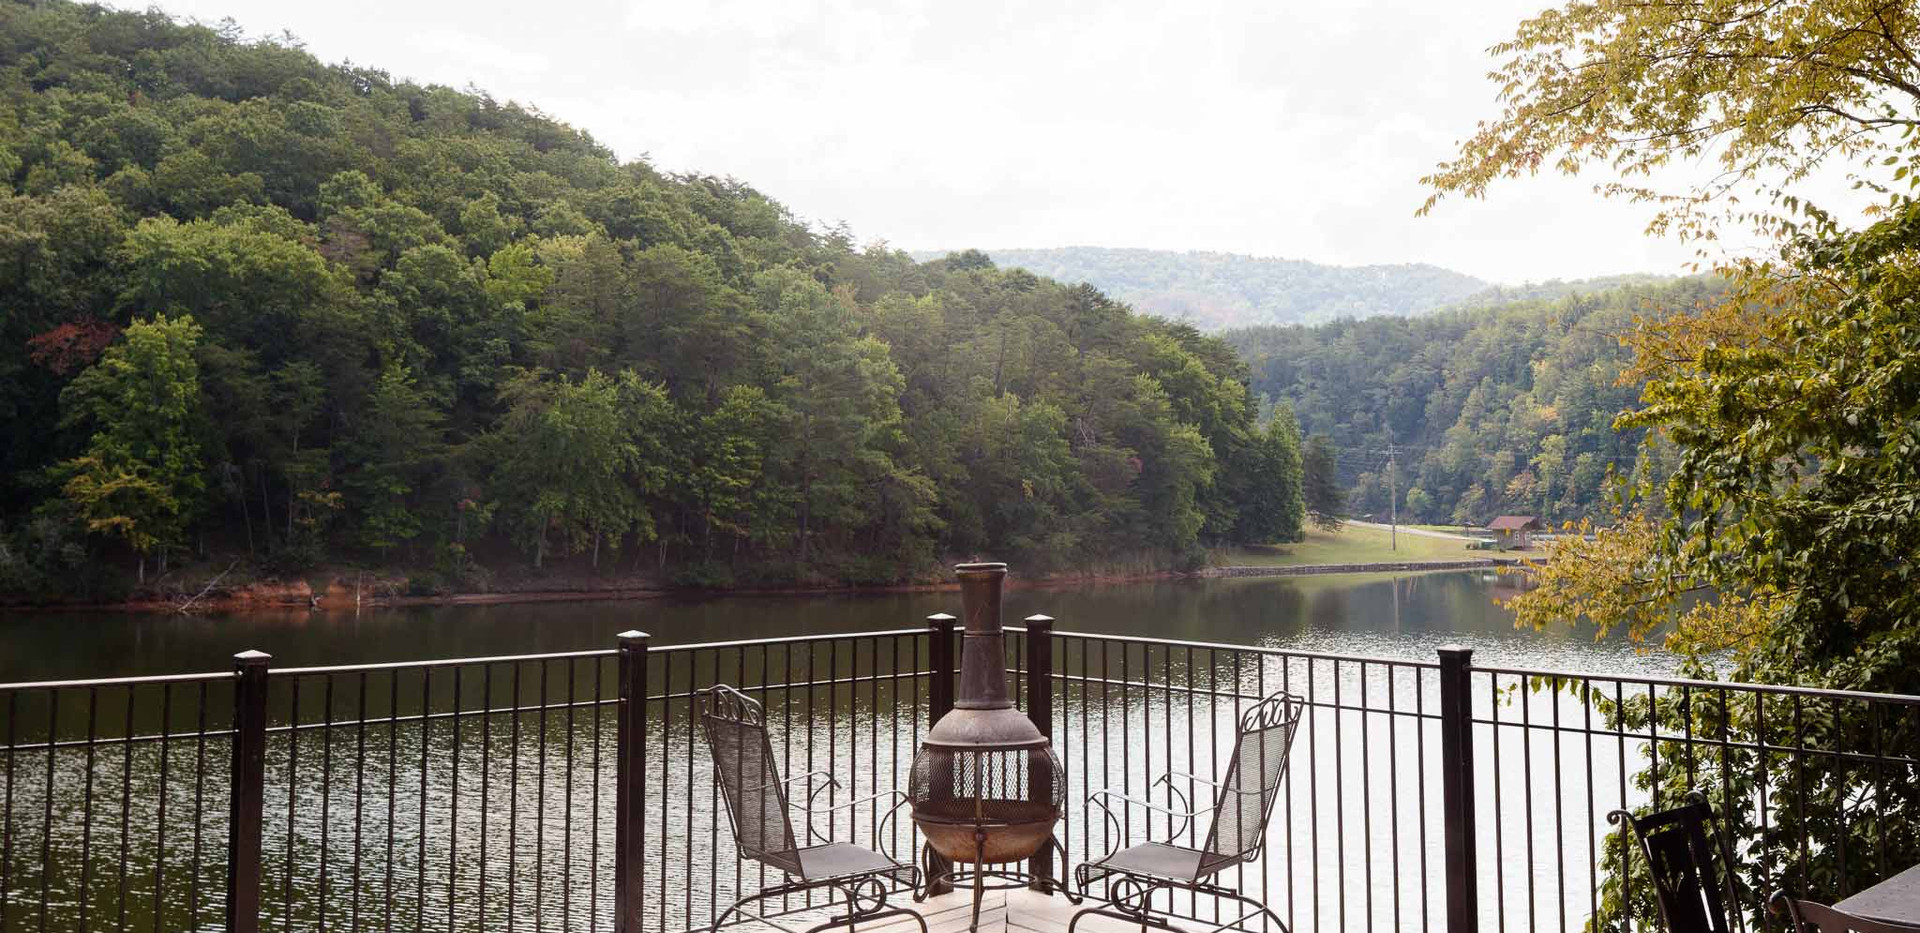 Relax and enjoy the view - Enchanted DIY RE-TREAT 2020